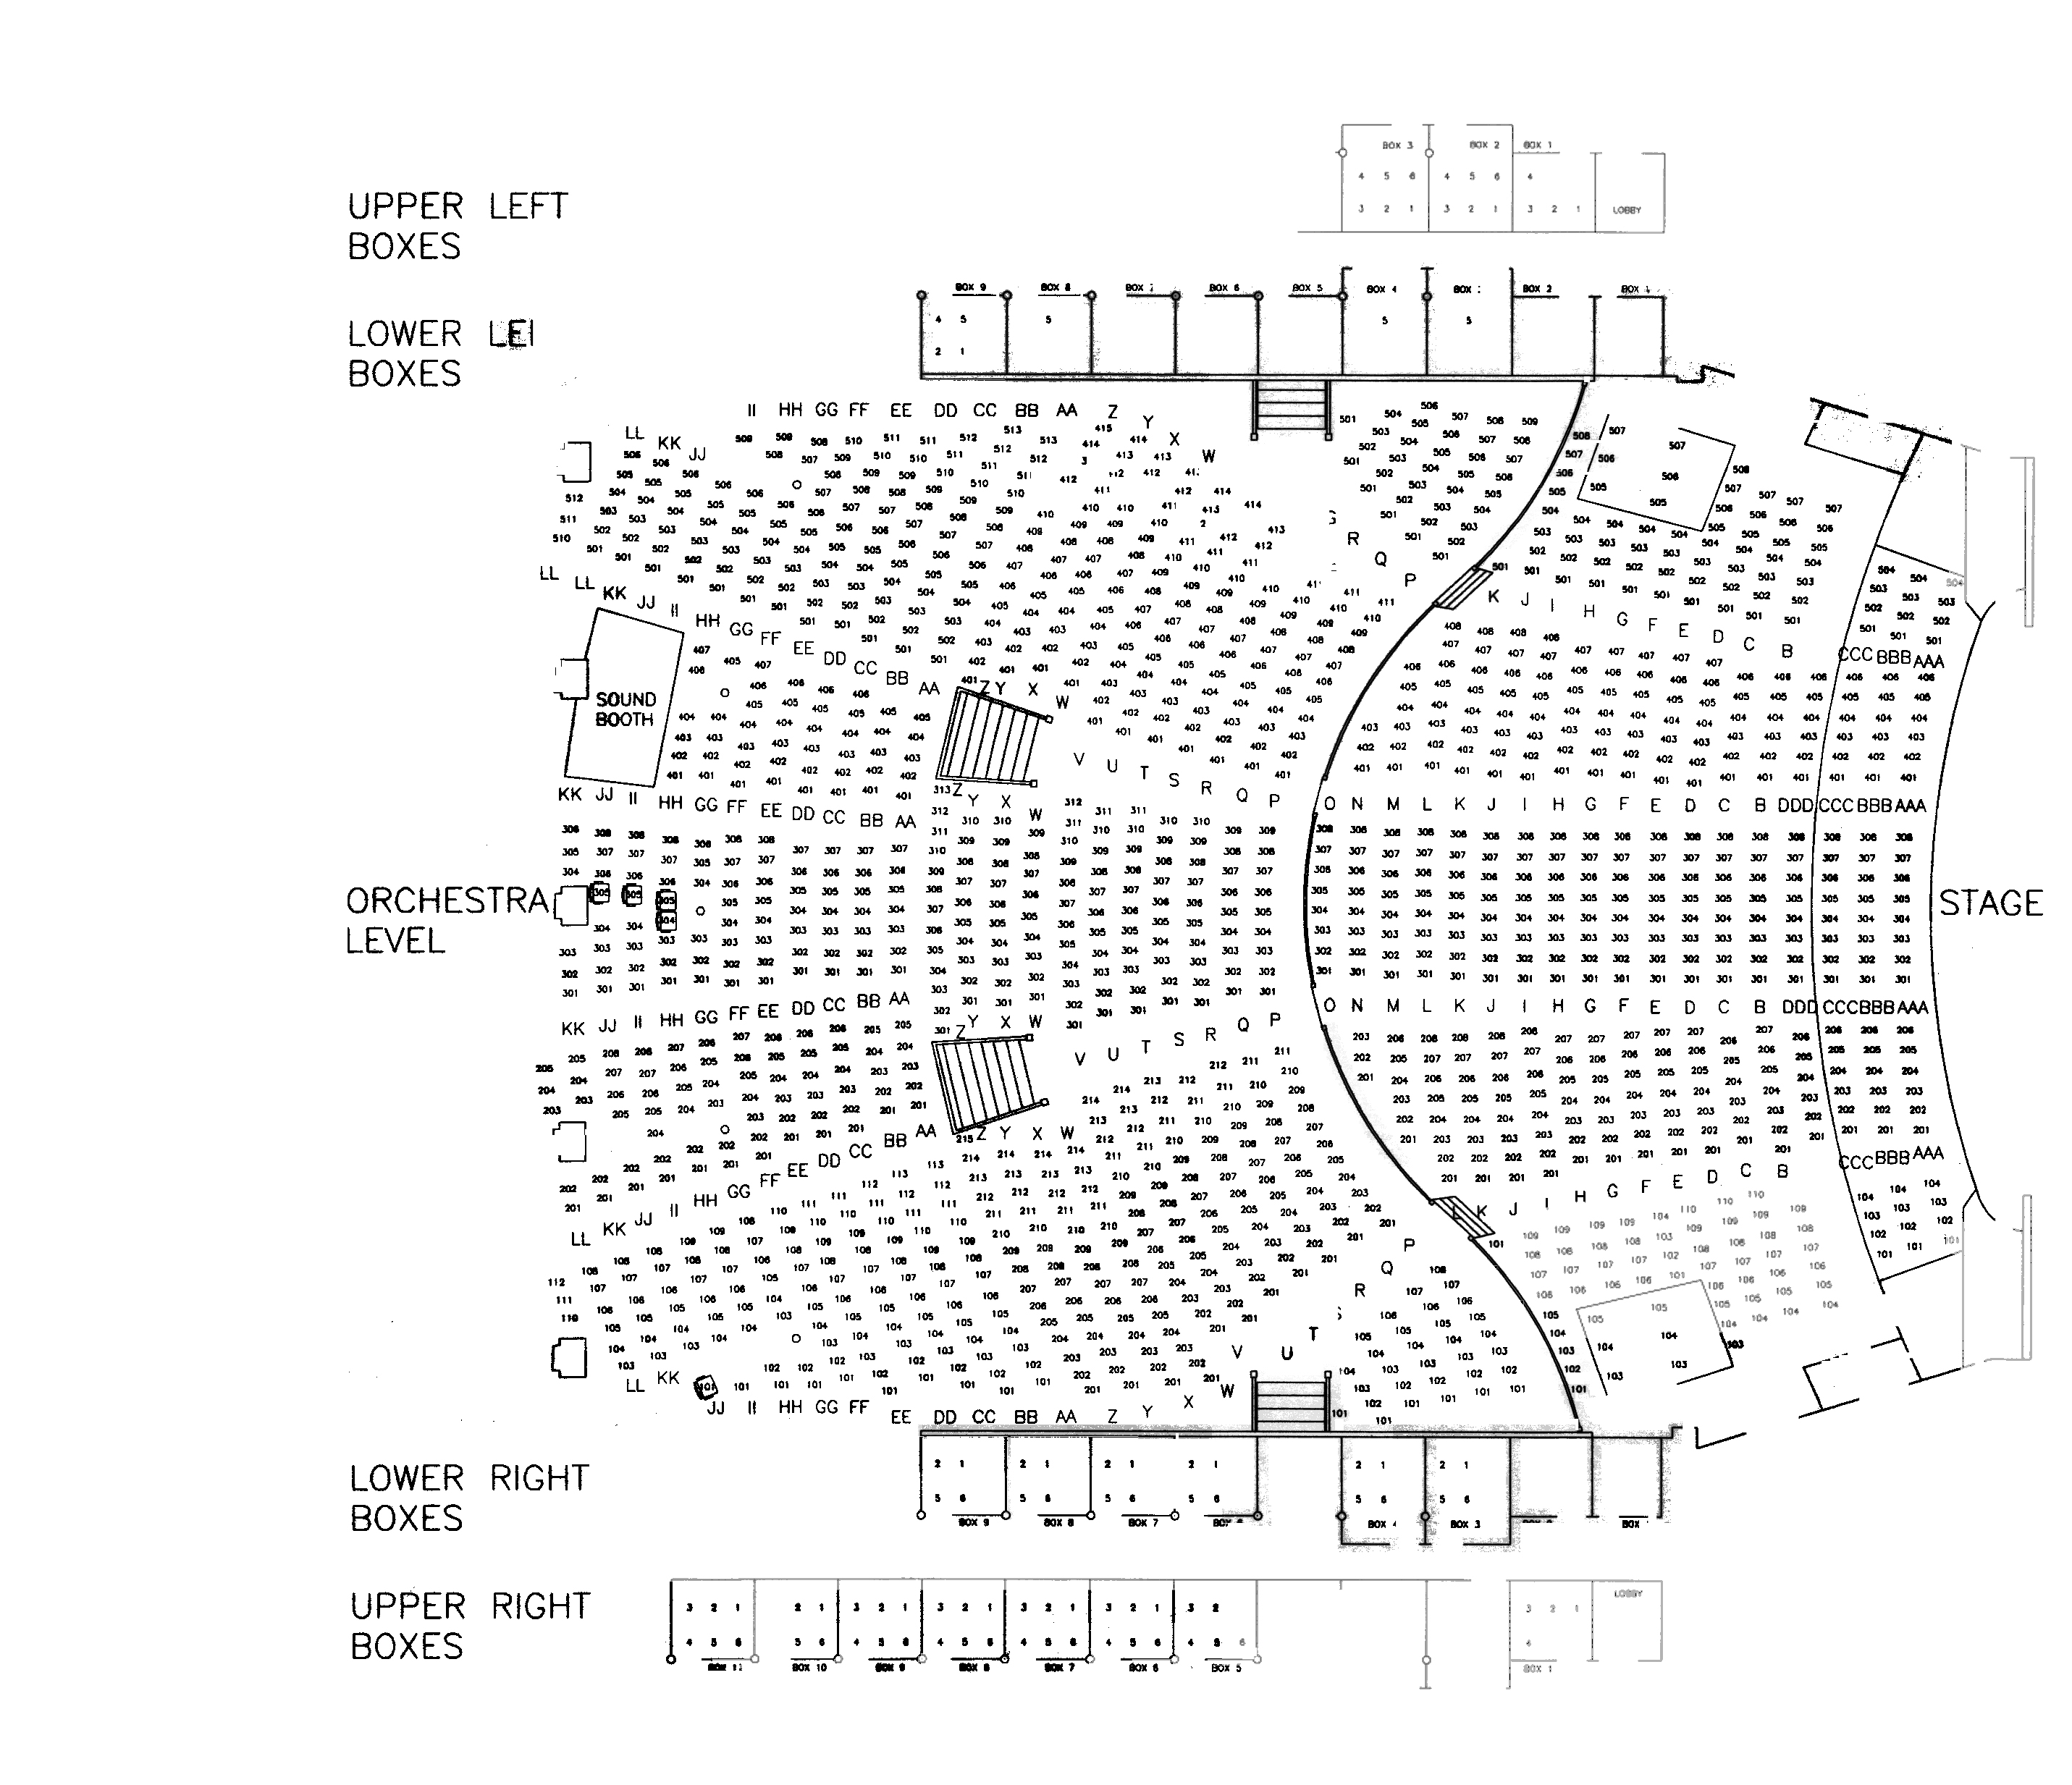 auditorium seating chart